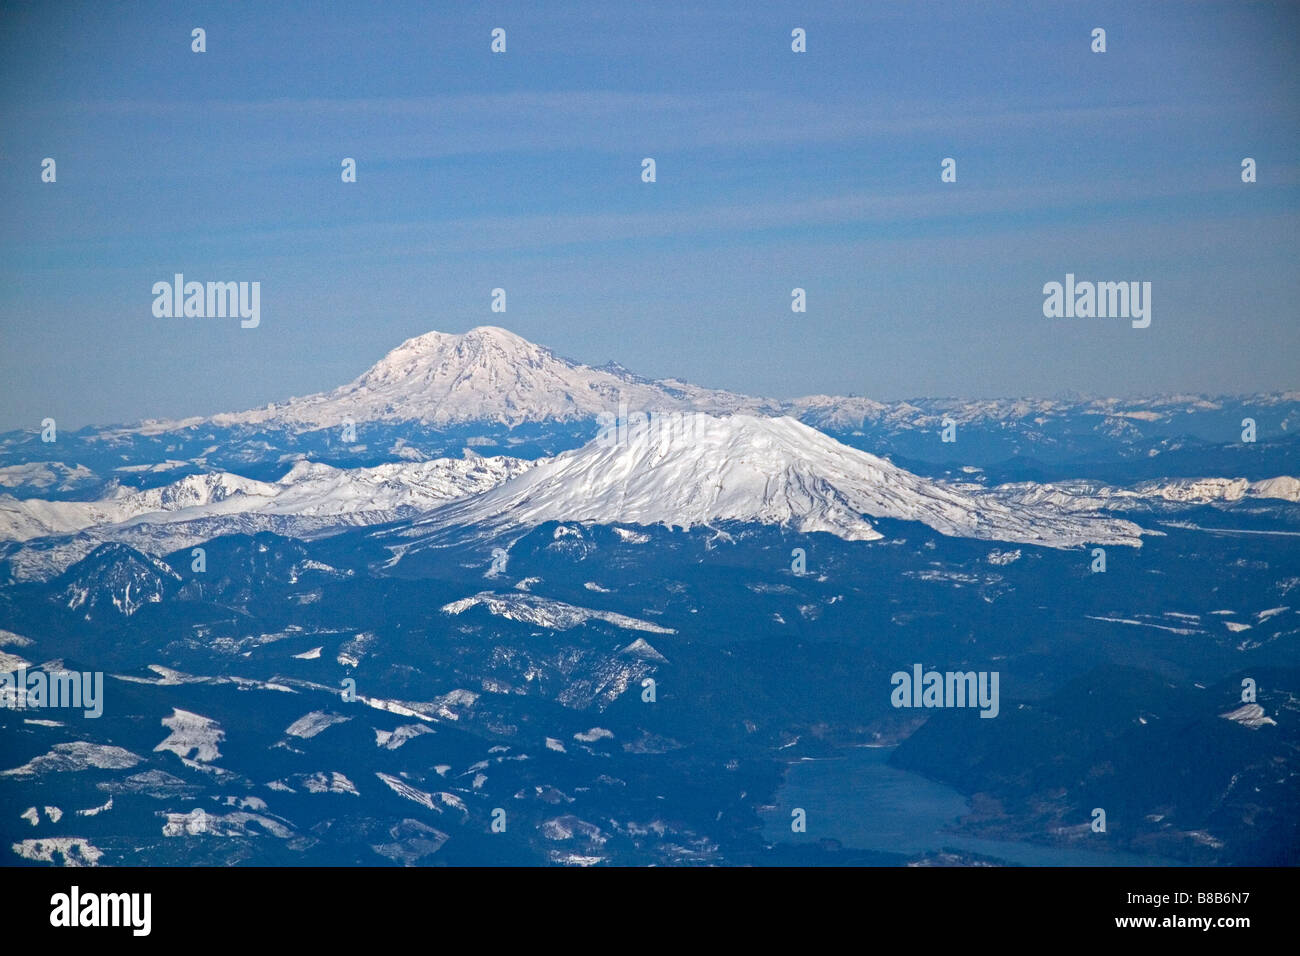 Aerial view of Mount Rainier and Mount St Helens in Washington USA - Stock Image